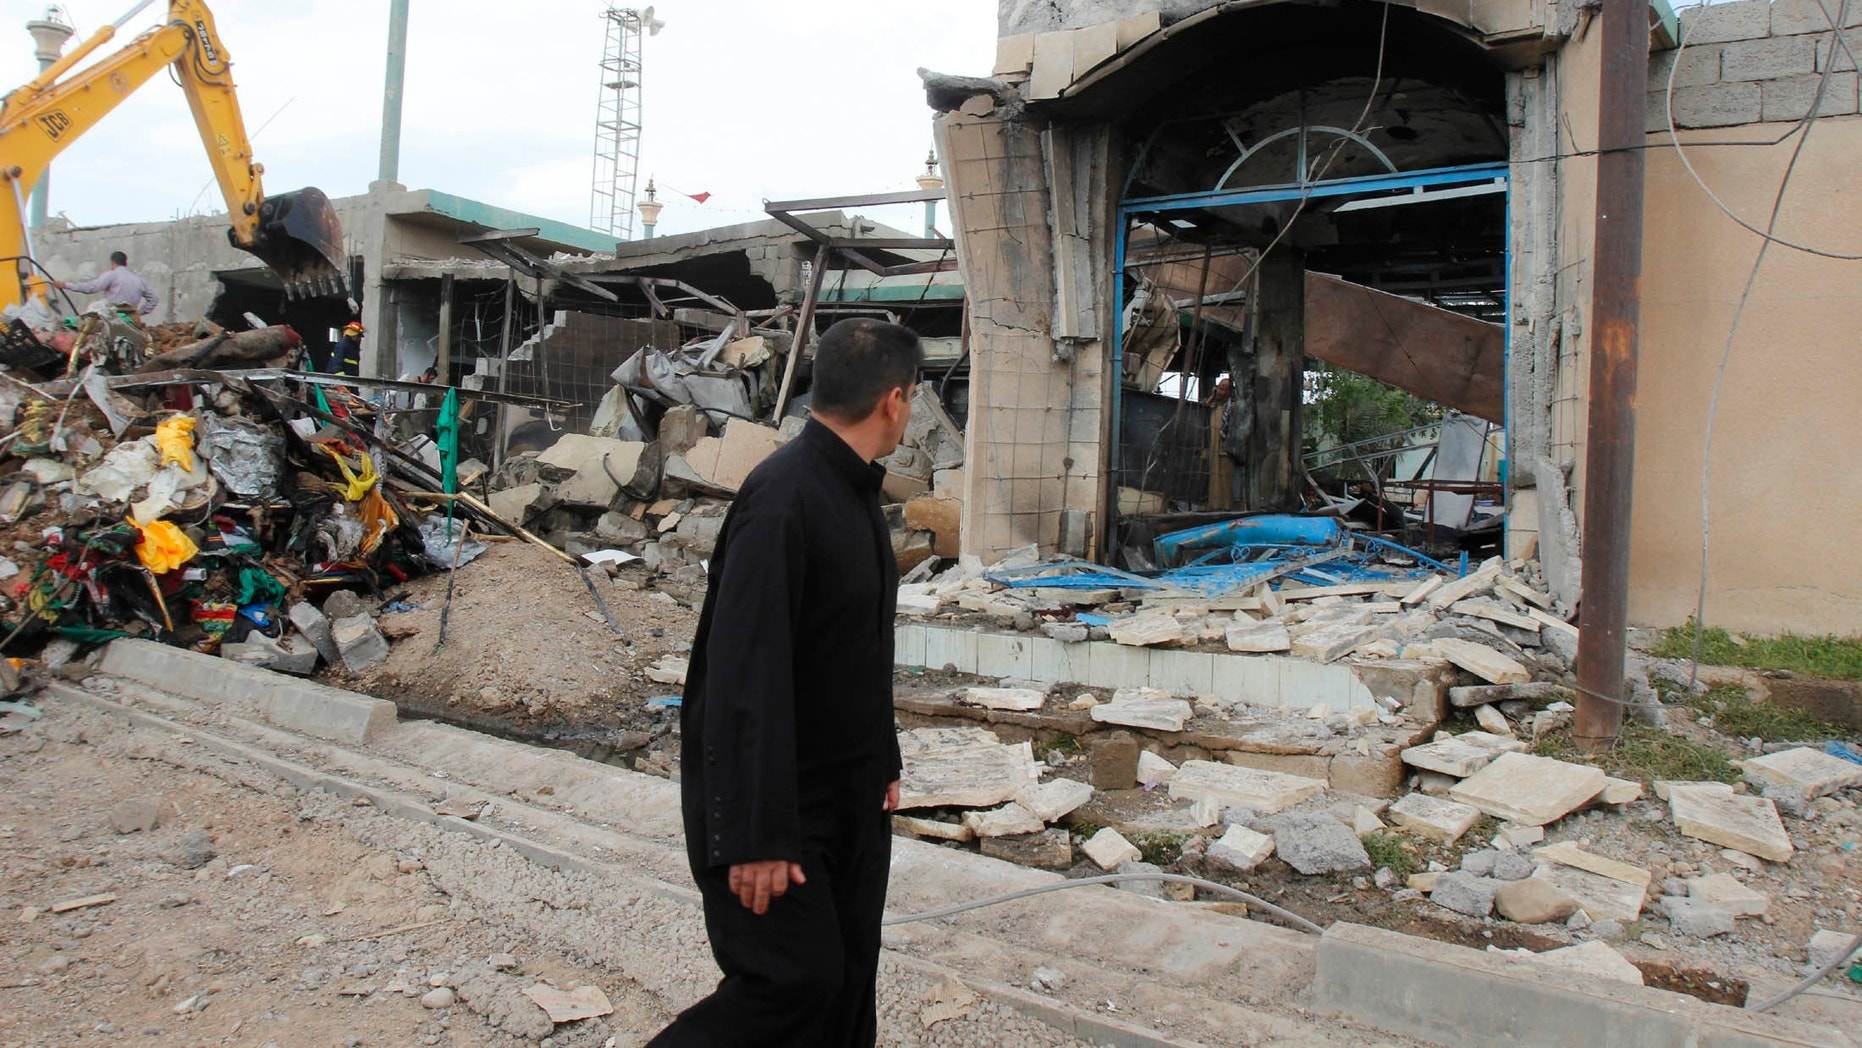 March 29, 2013 - A man looks at the site of a bomb attack in Kirkuk, 155 miles north of Baghdad.